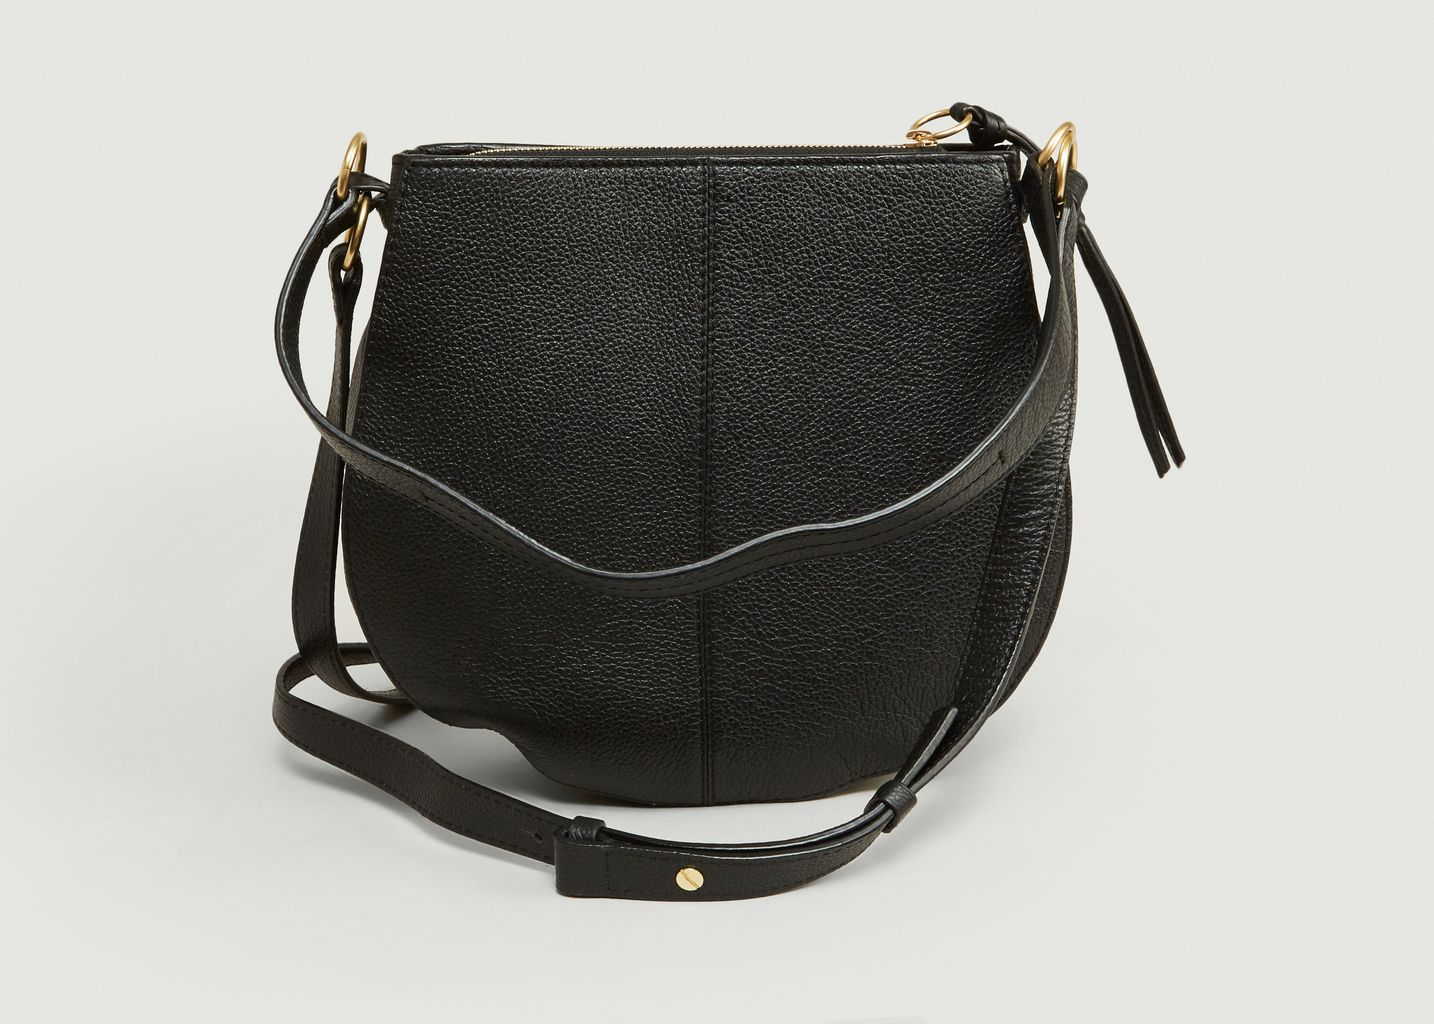 137813475a3c7 Sac Kriss Small Hobo Noir See by Chloé